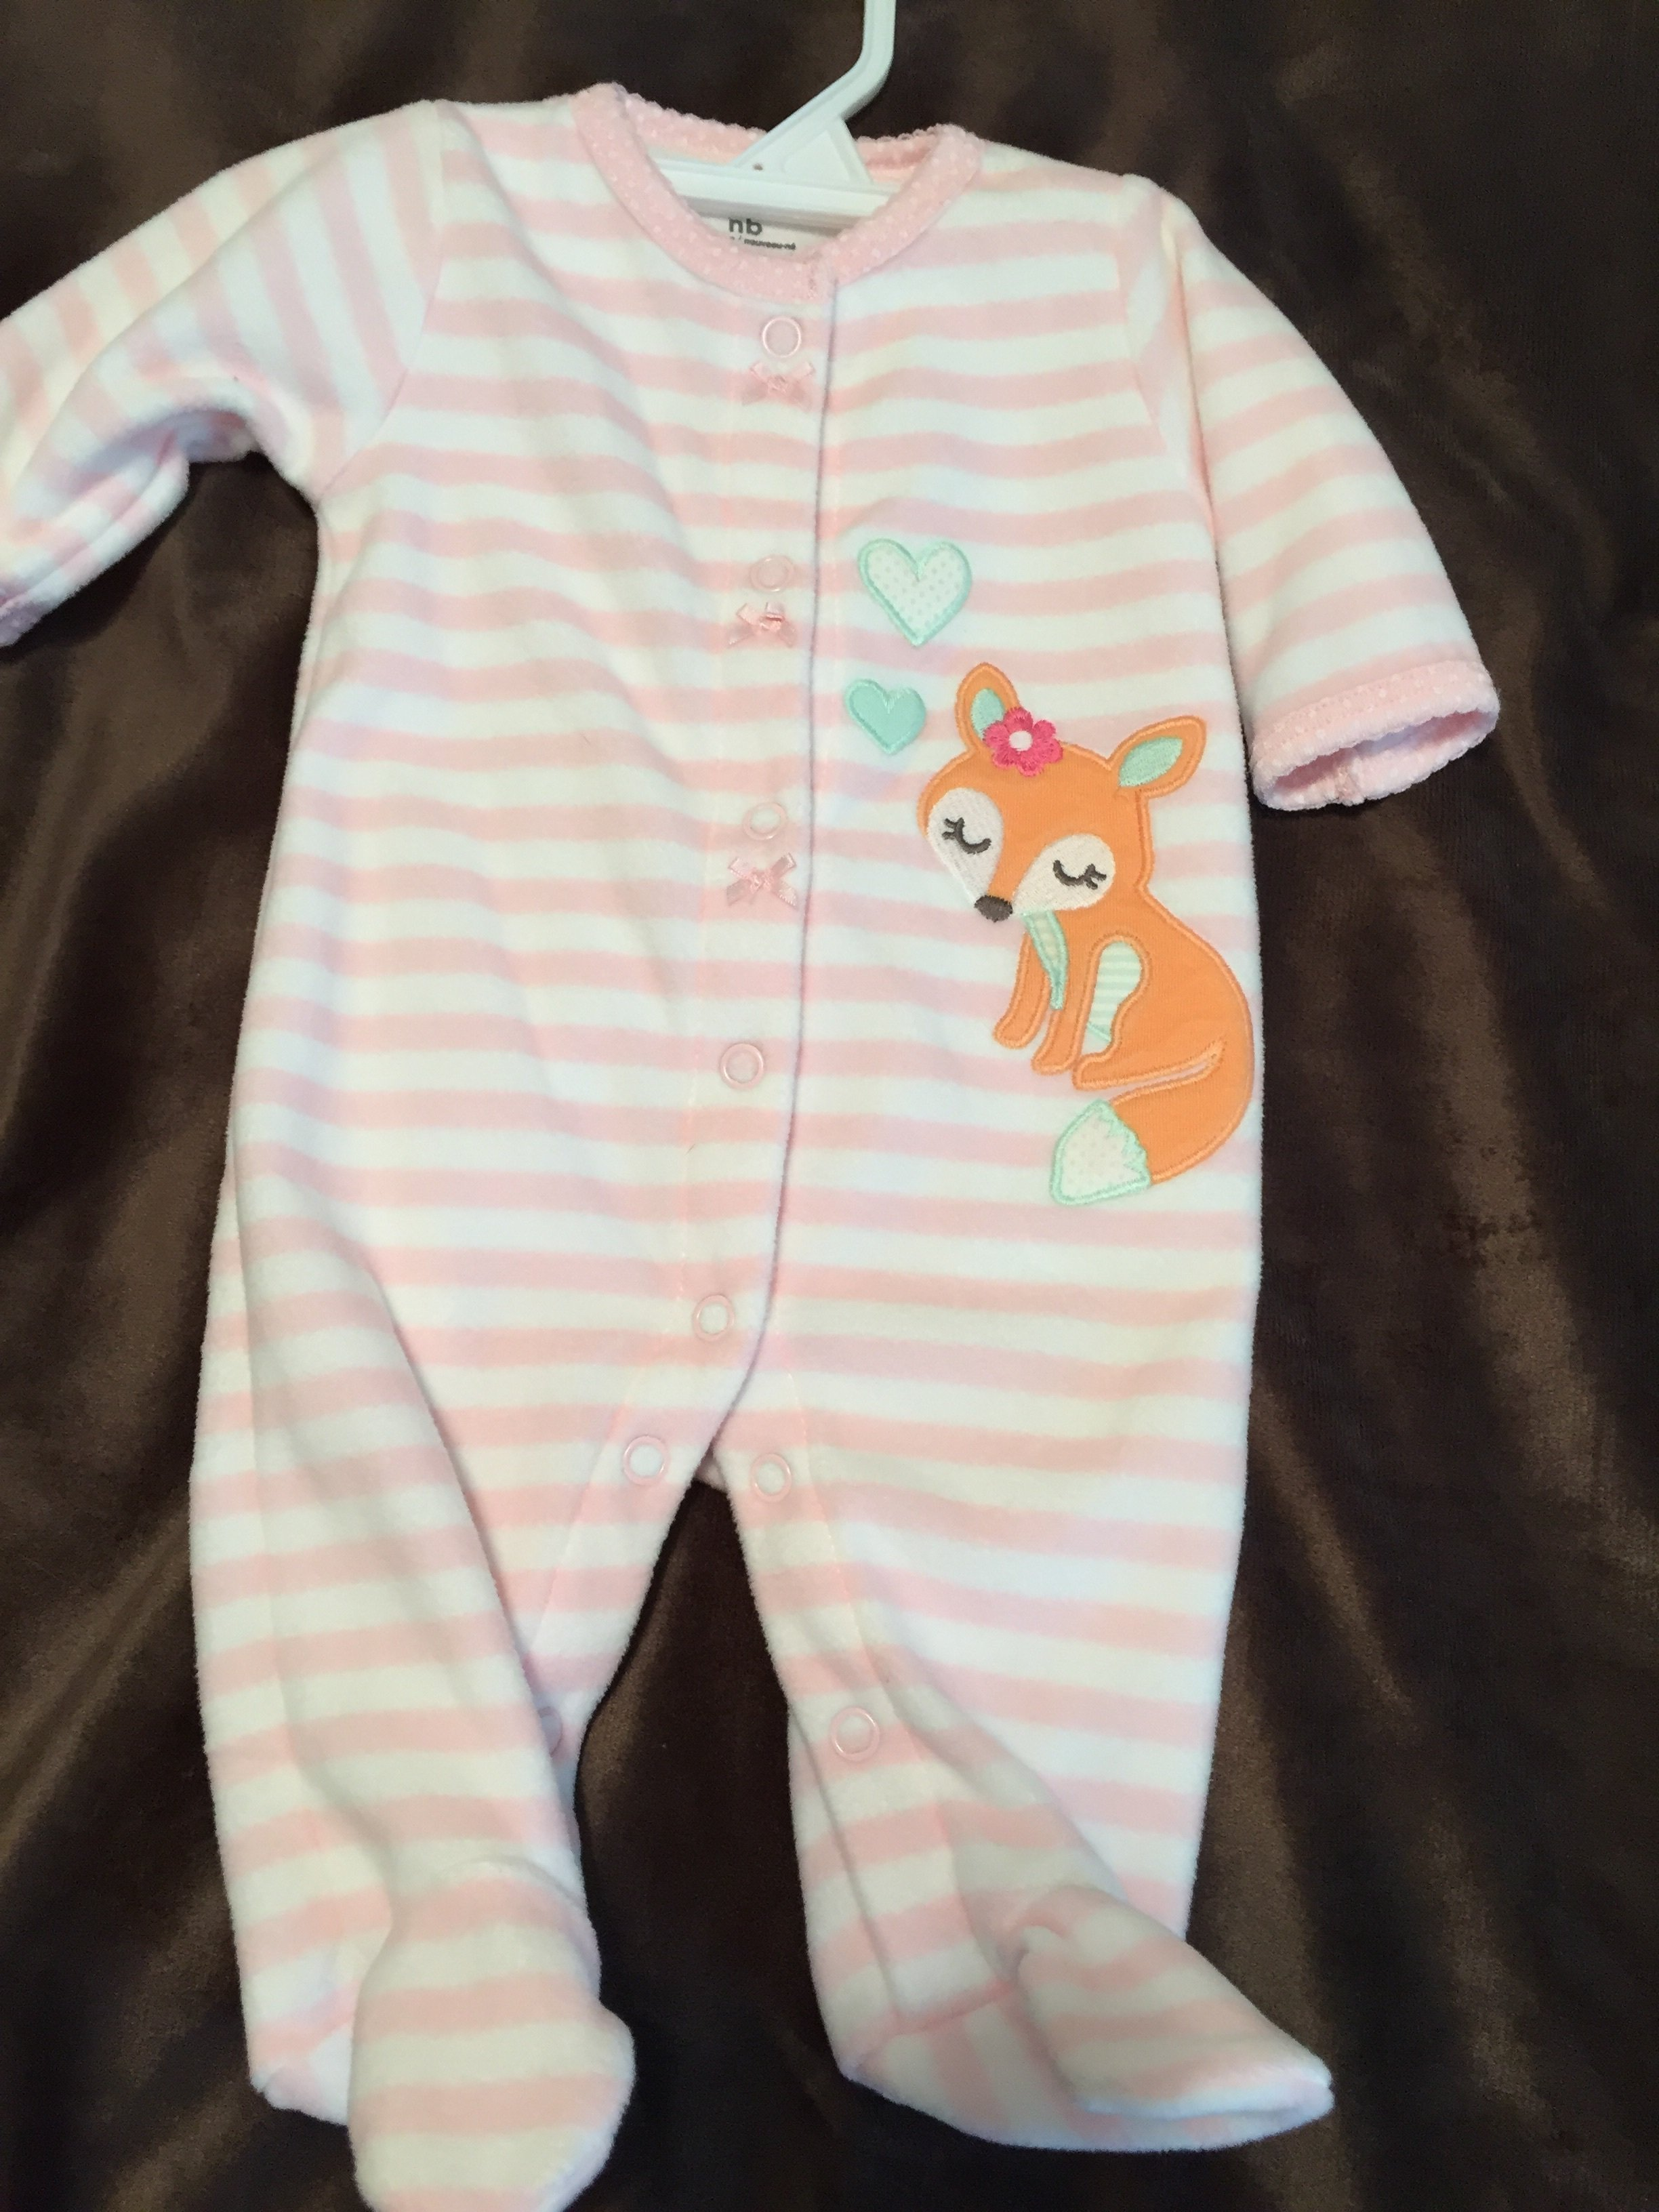 ISO preemie boy clothes For Sale Wanted Bountiful Baby